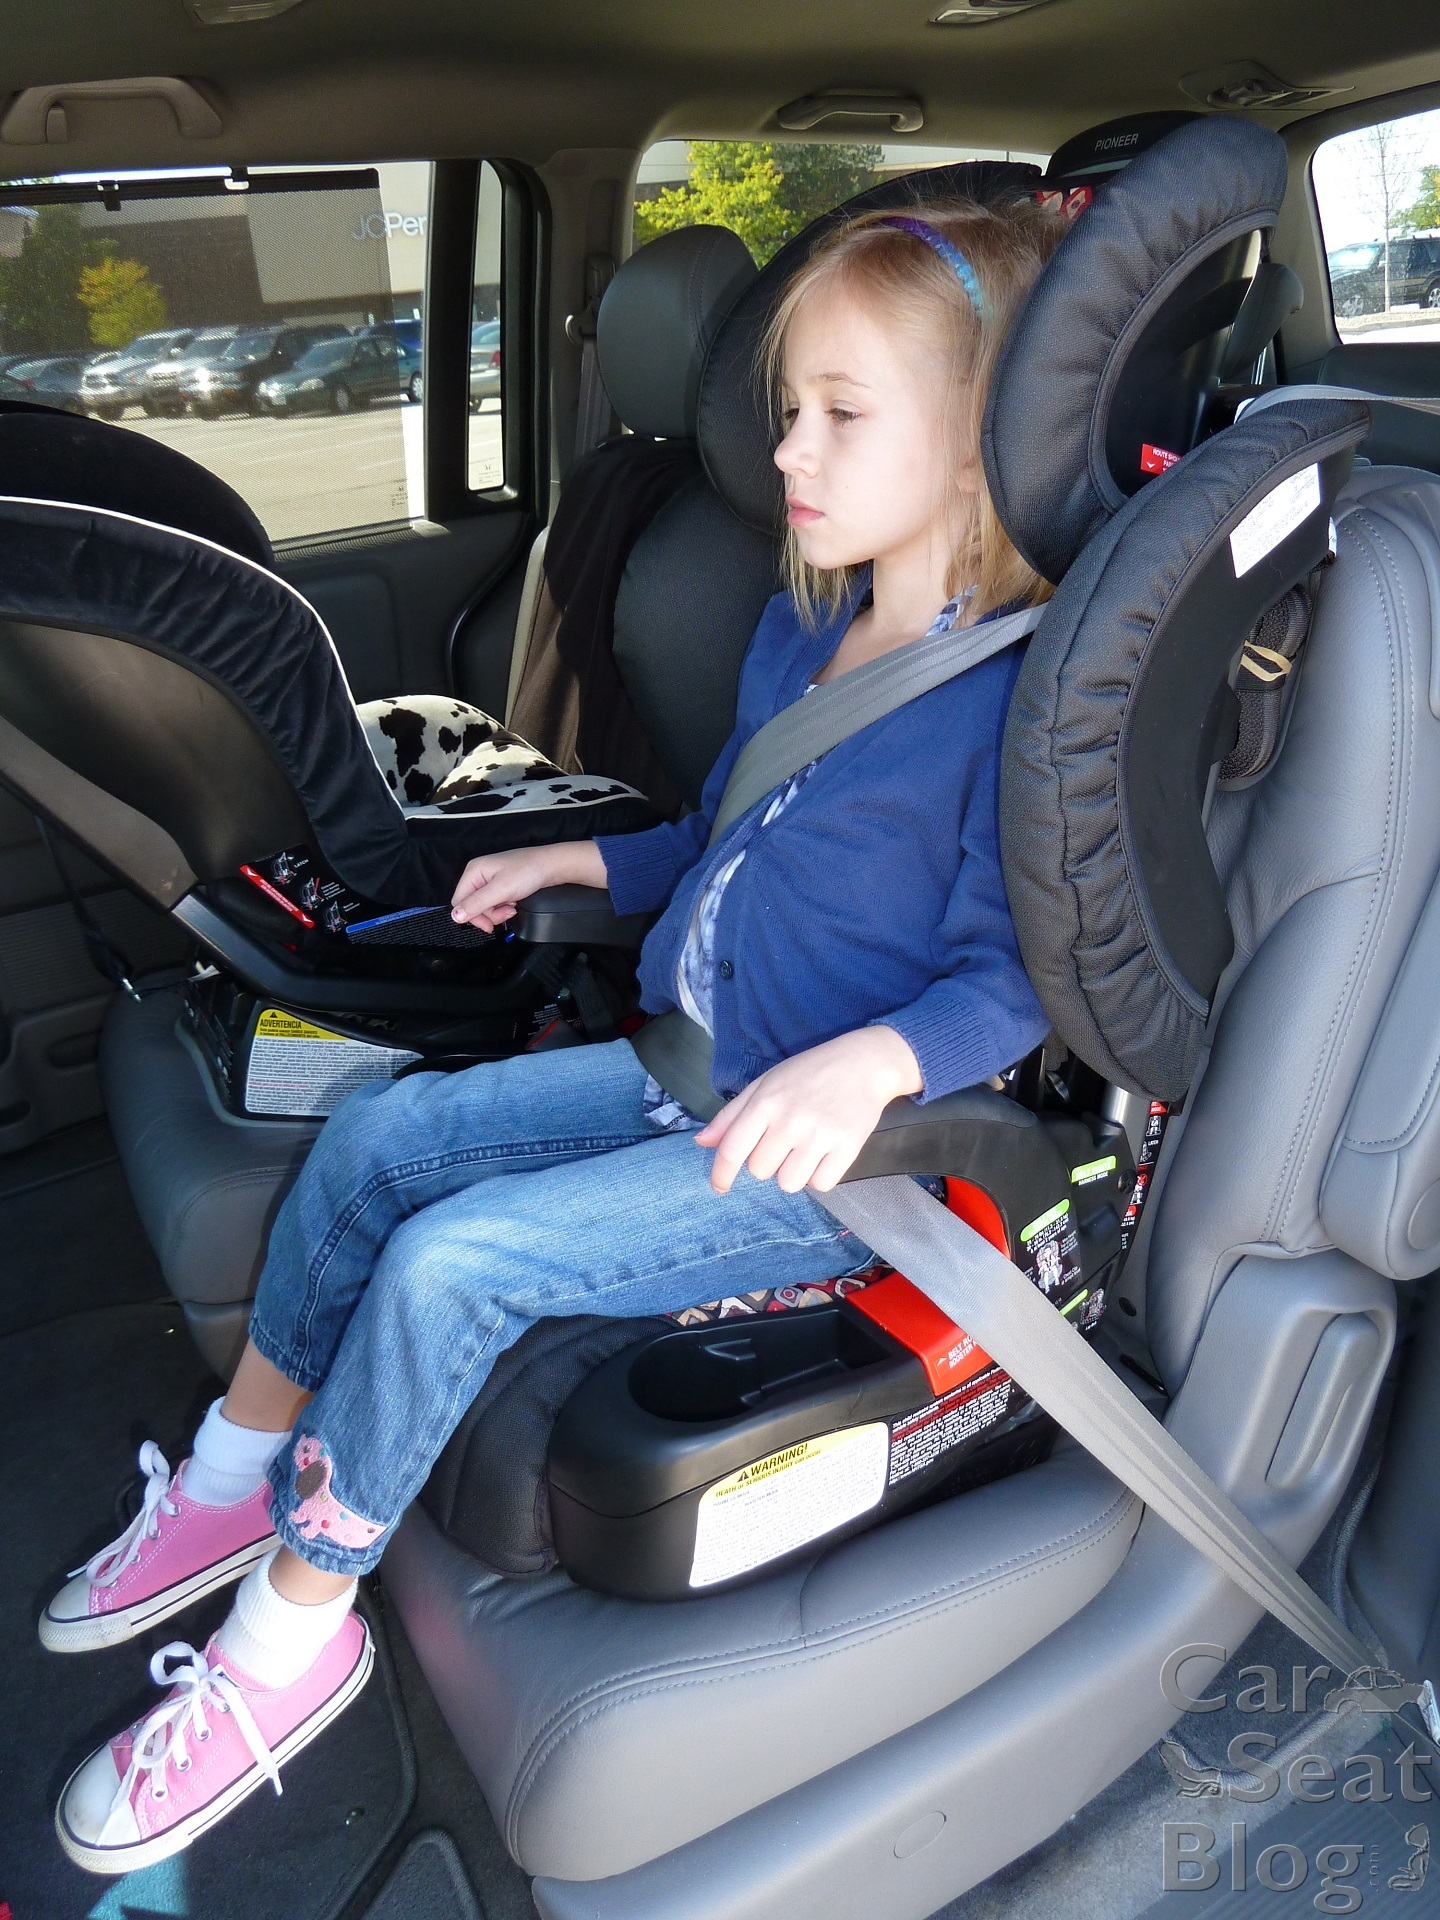 carseatblog the most trusted source for car seat reviews ratings deals news. Black Bedroom Furniture Sets. Home Design Ideas